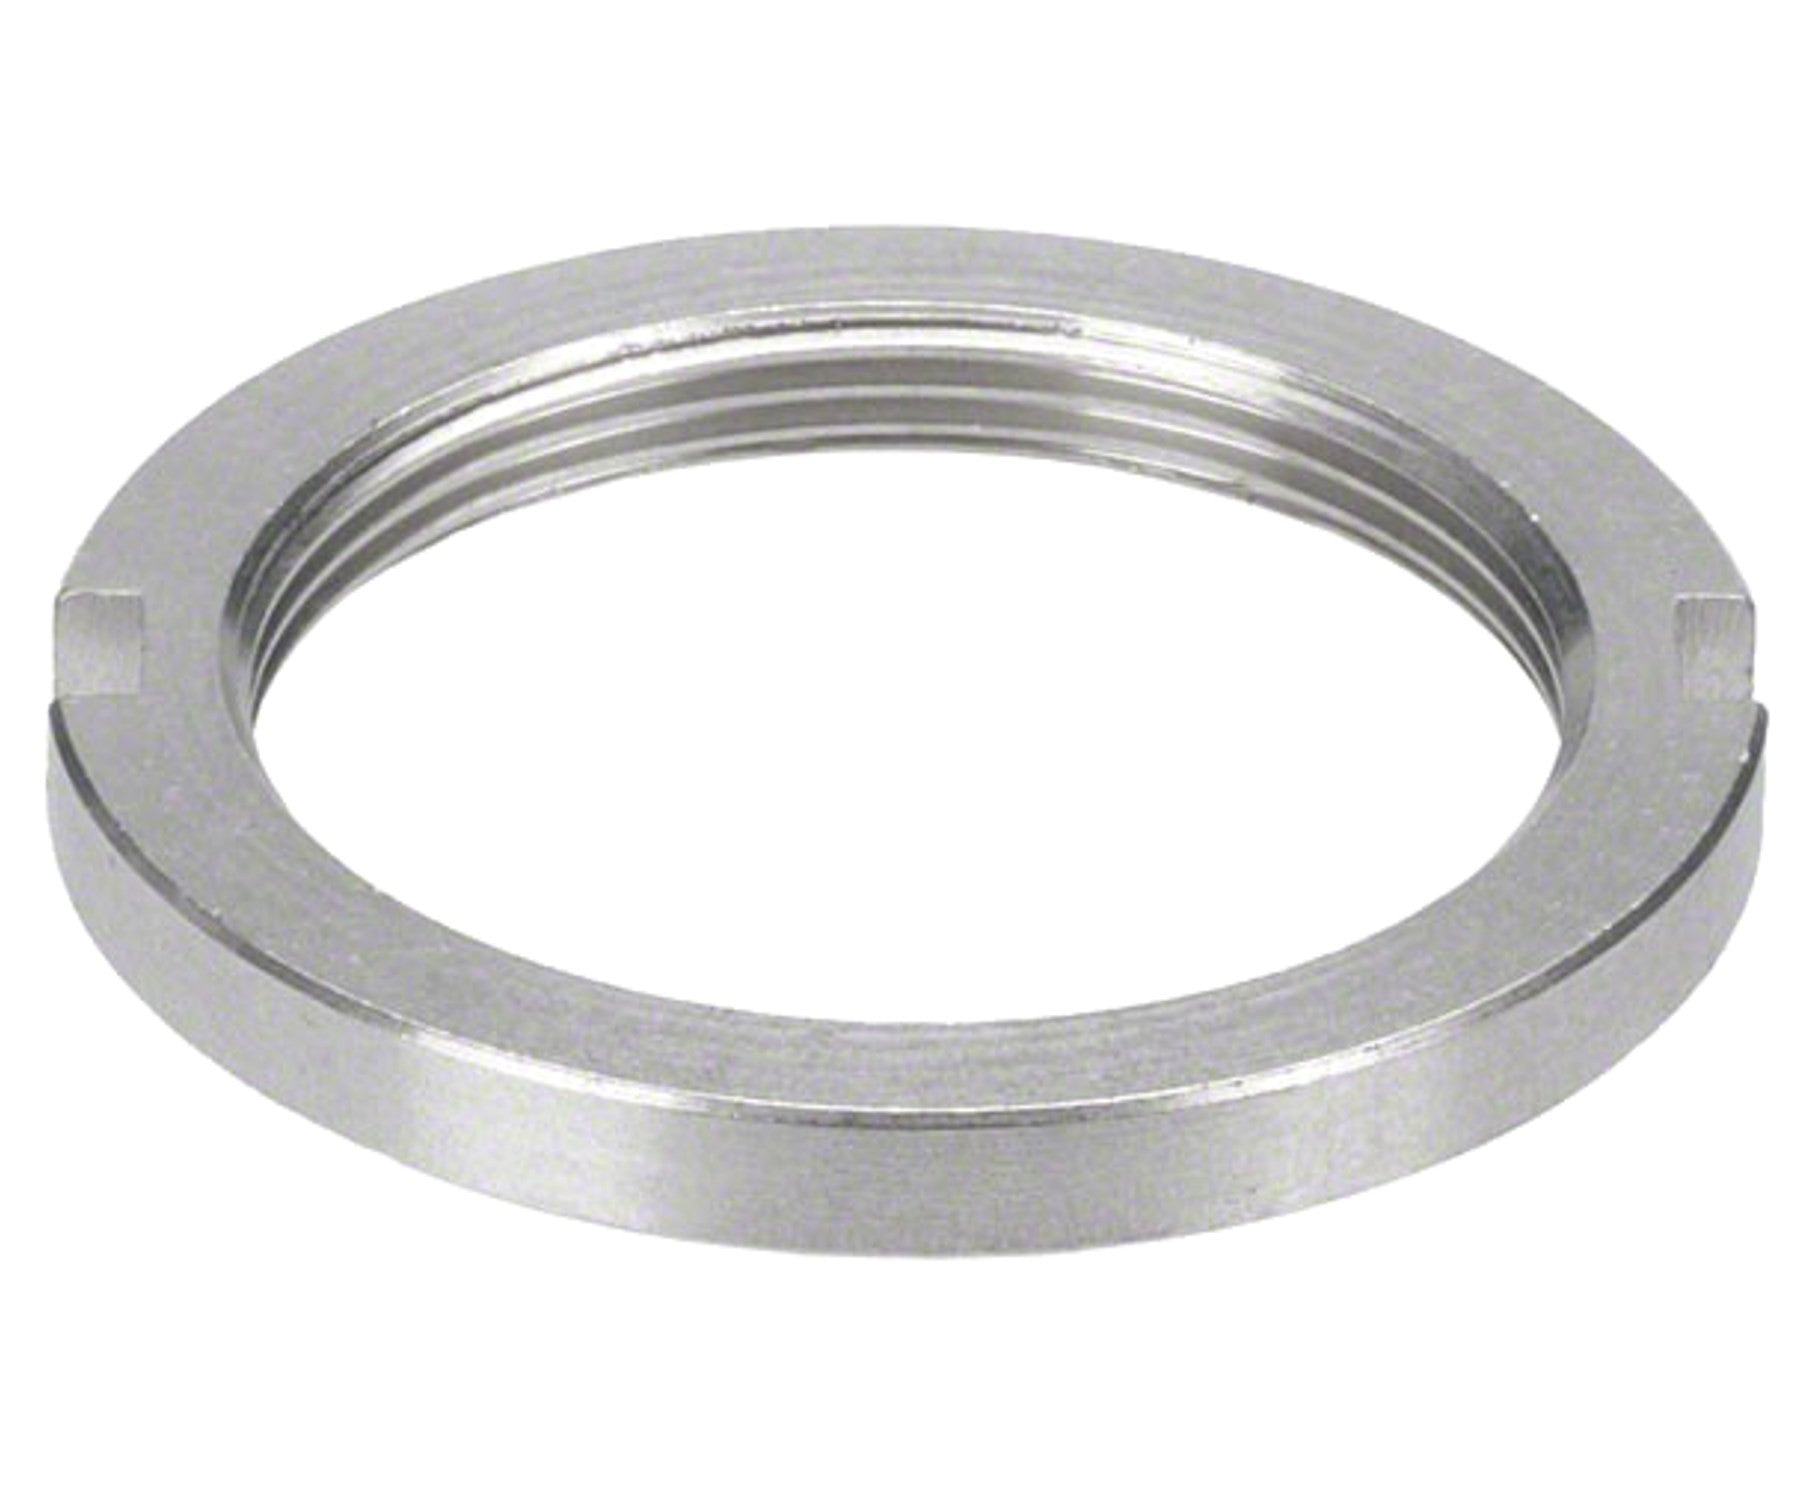 EAI stainless steel lockring - Retrogression